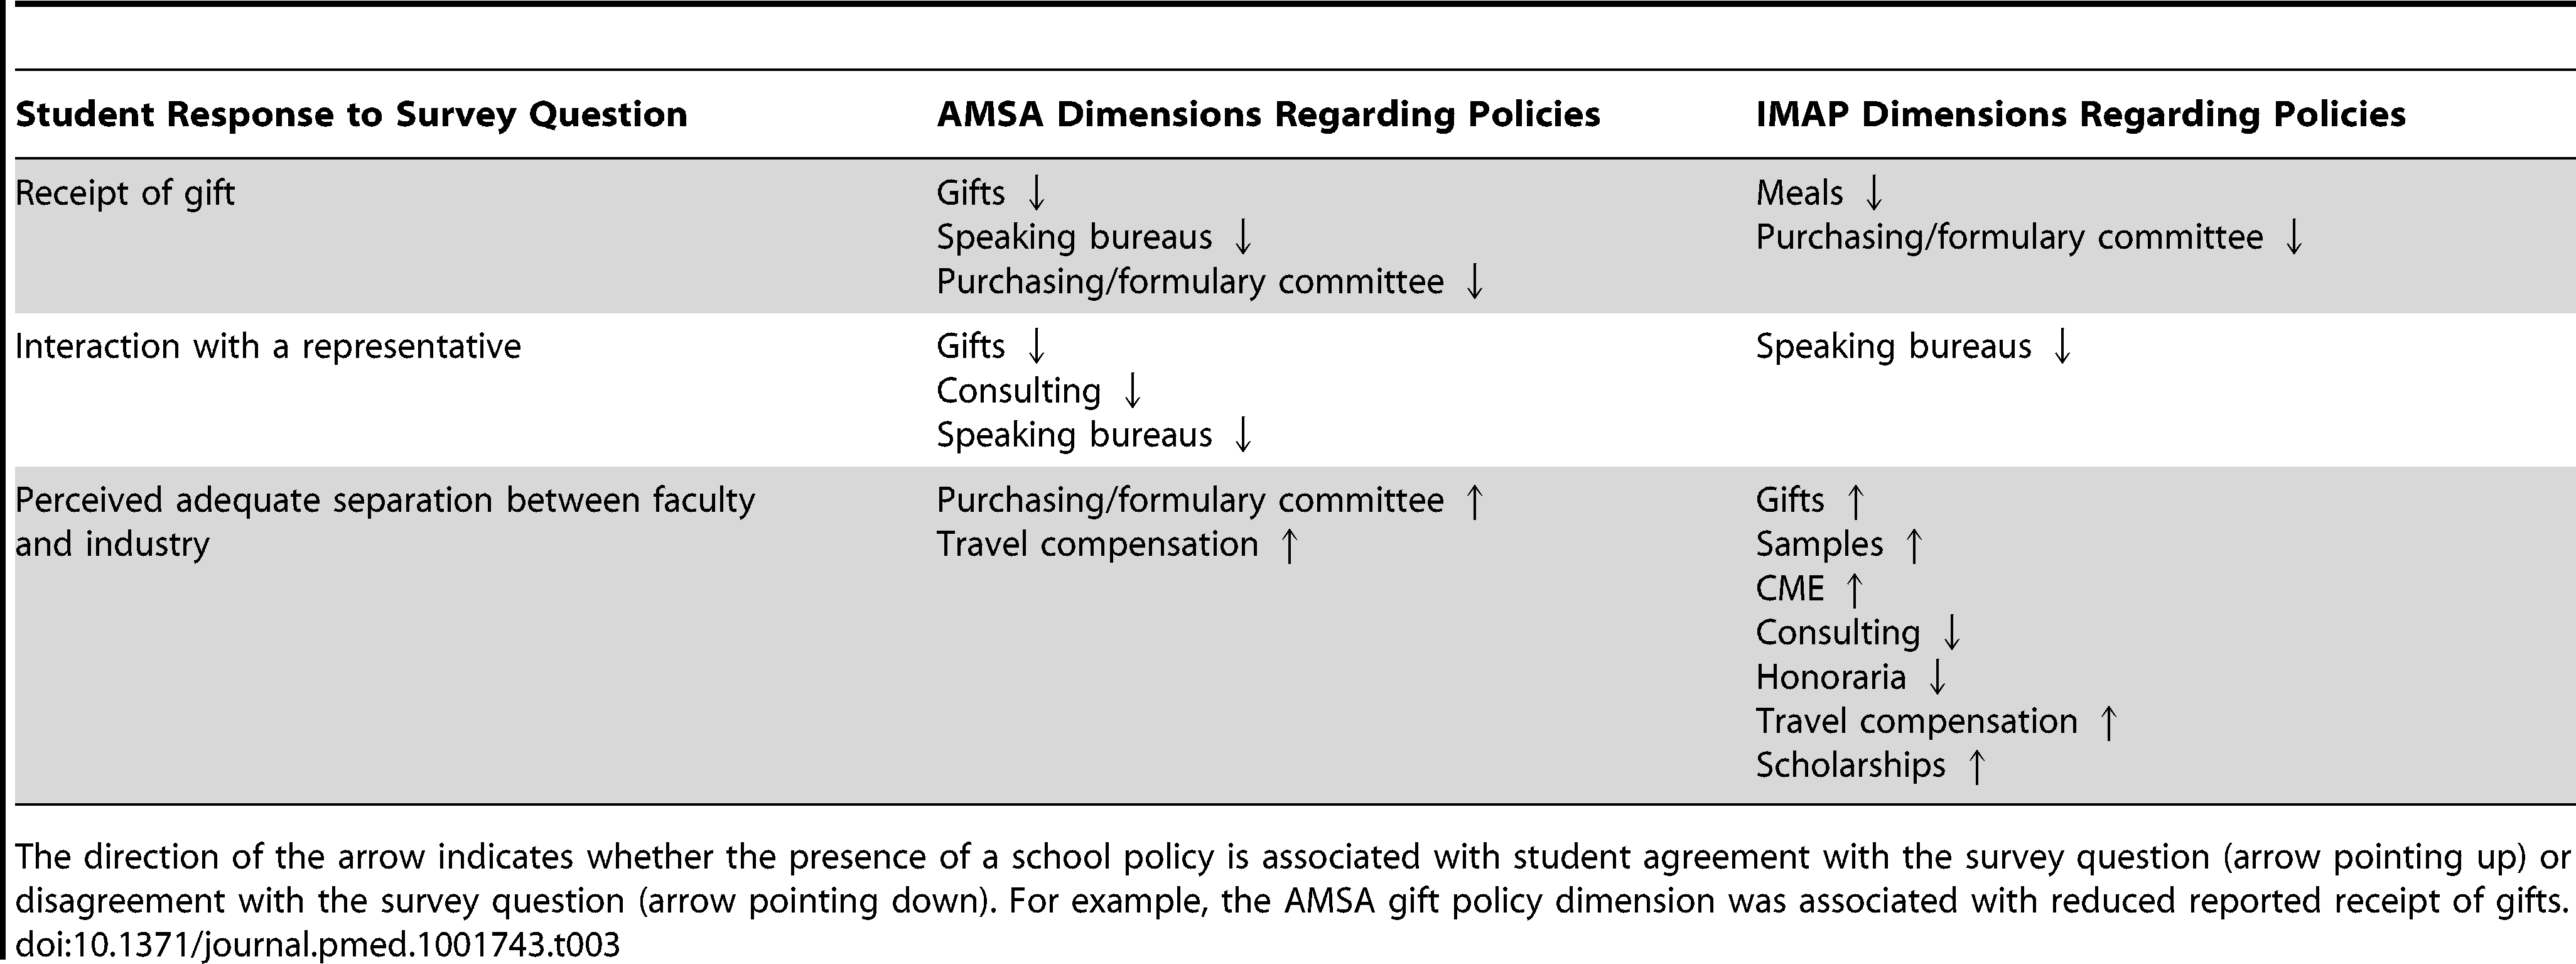 Policy dimensions selected by LASSO as predictors to student responses.